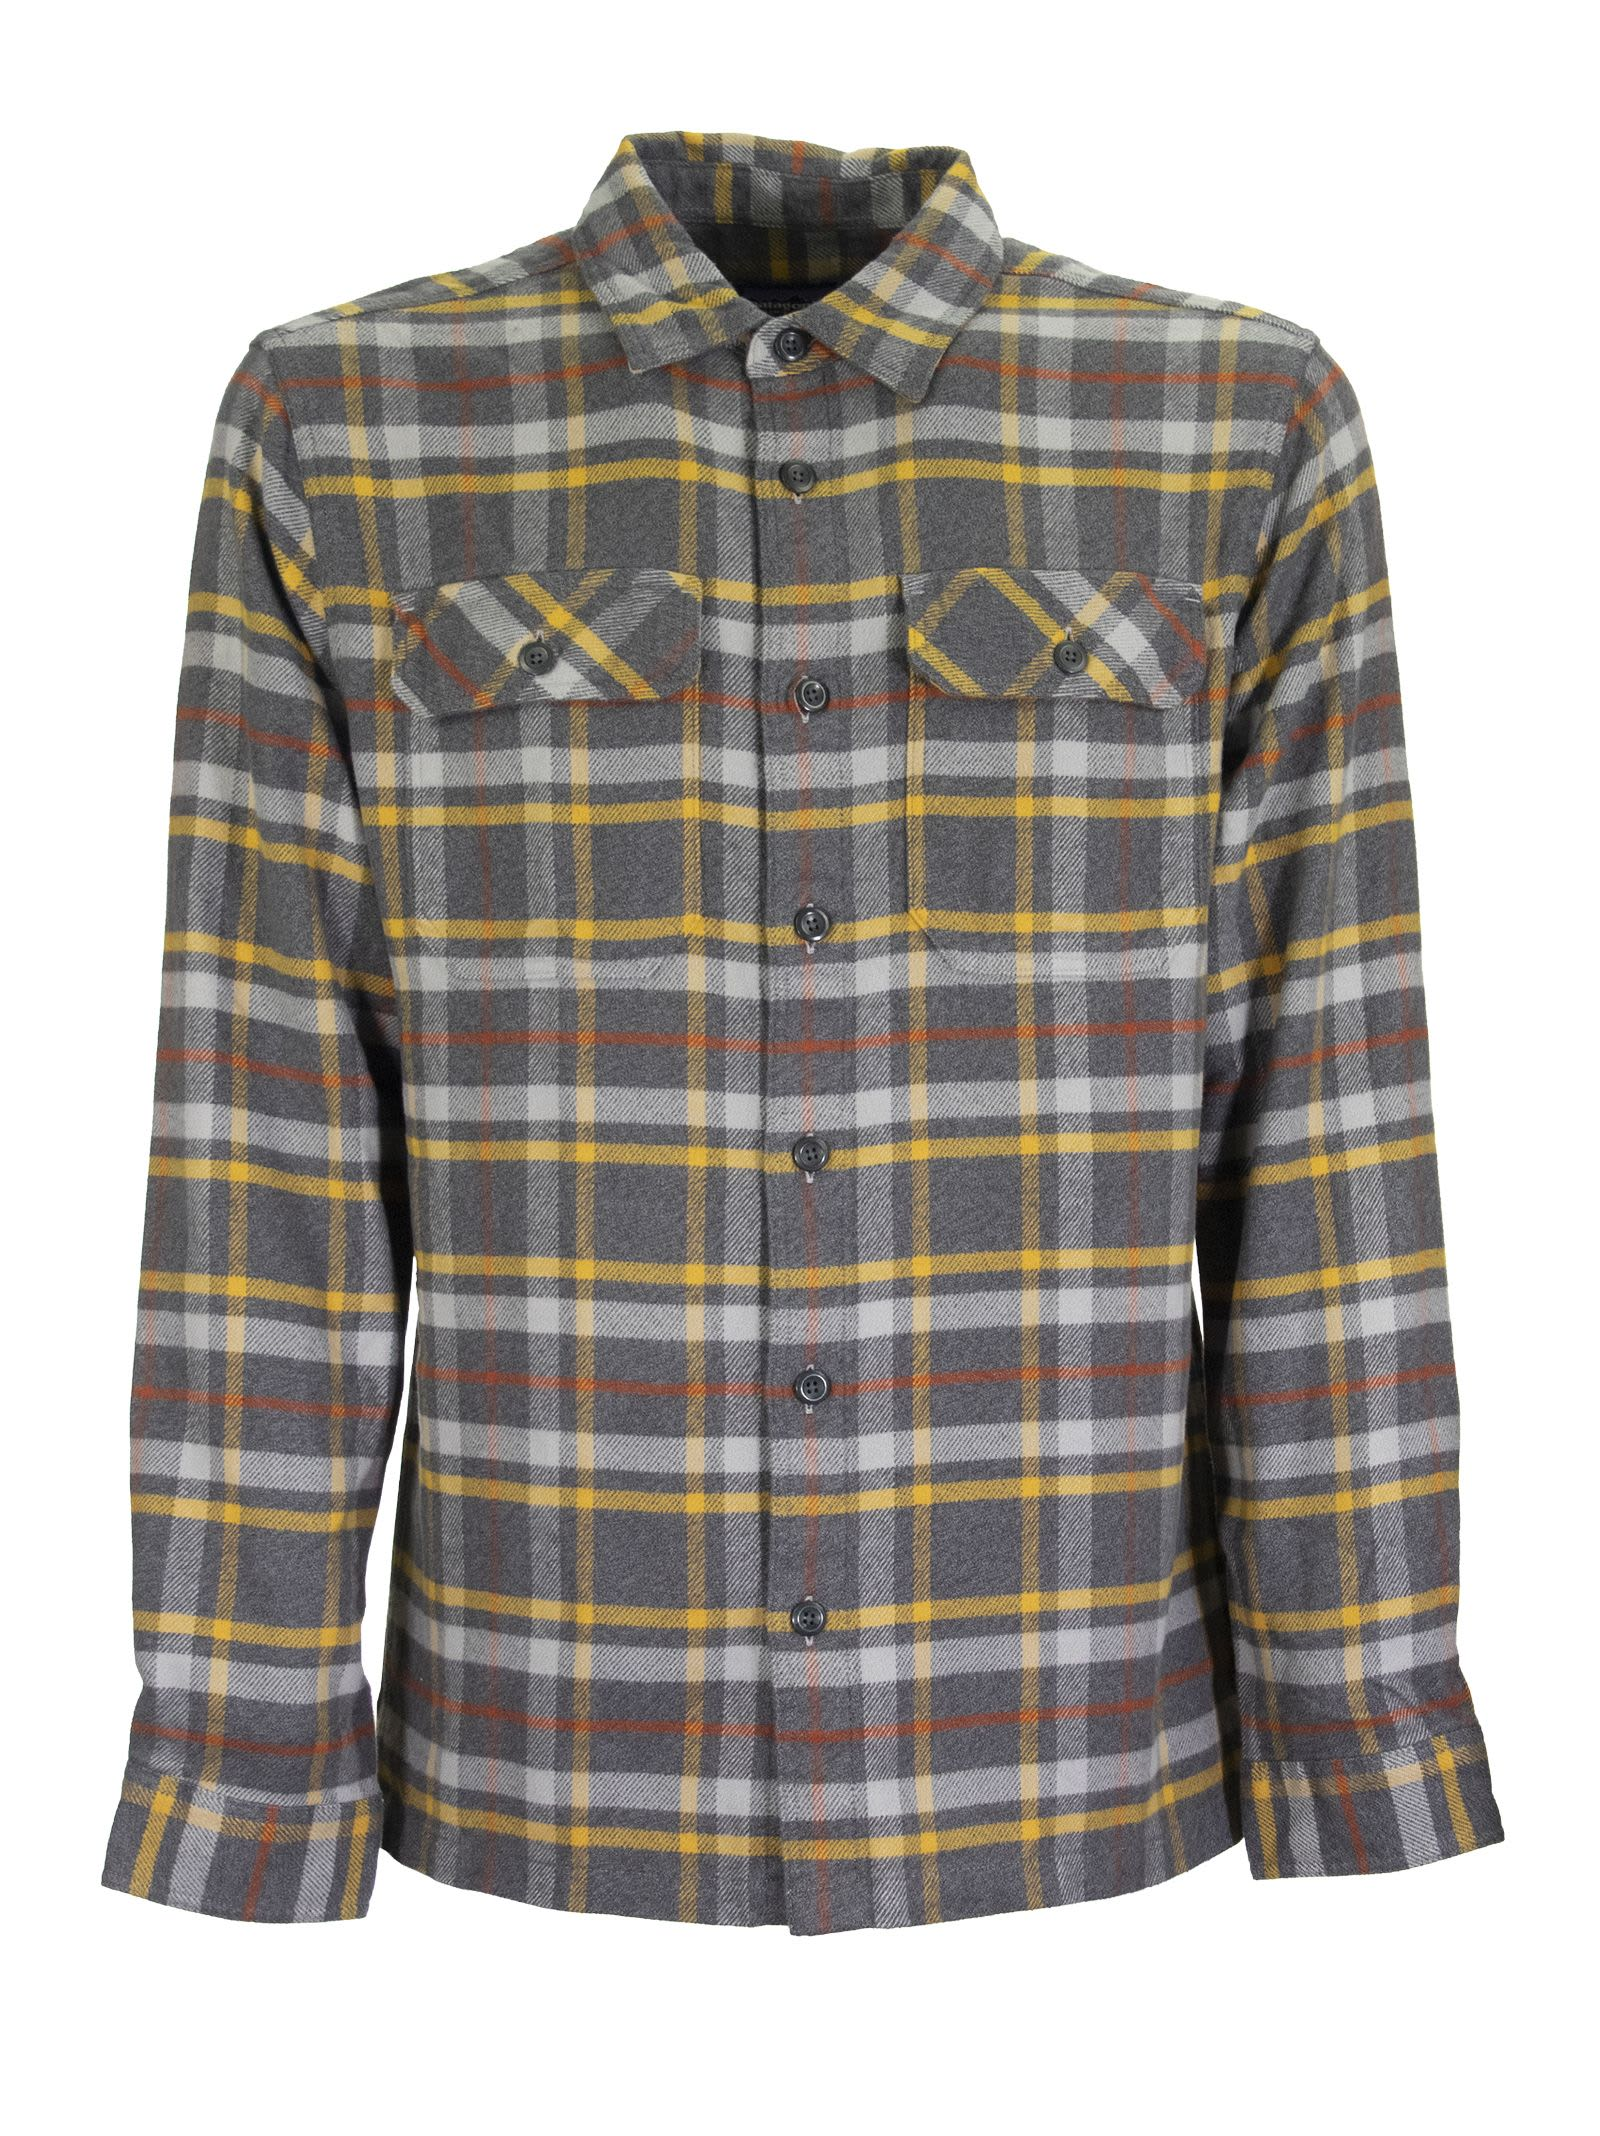 Cheap And Nice Patagonia A Heavyweight 100% Organic Cotton Long-sleeved Flannel Shirt - Top Quality